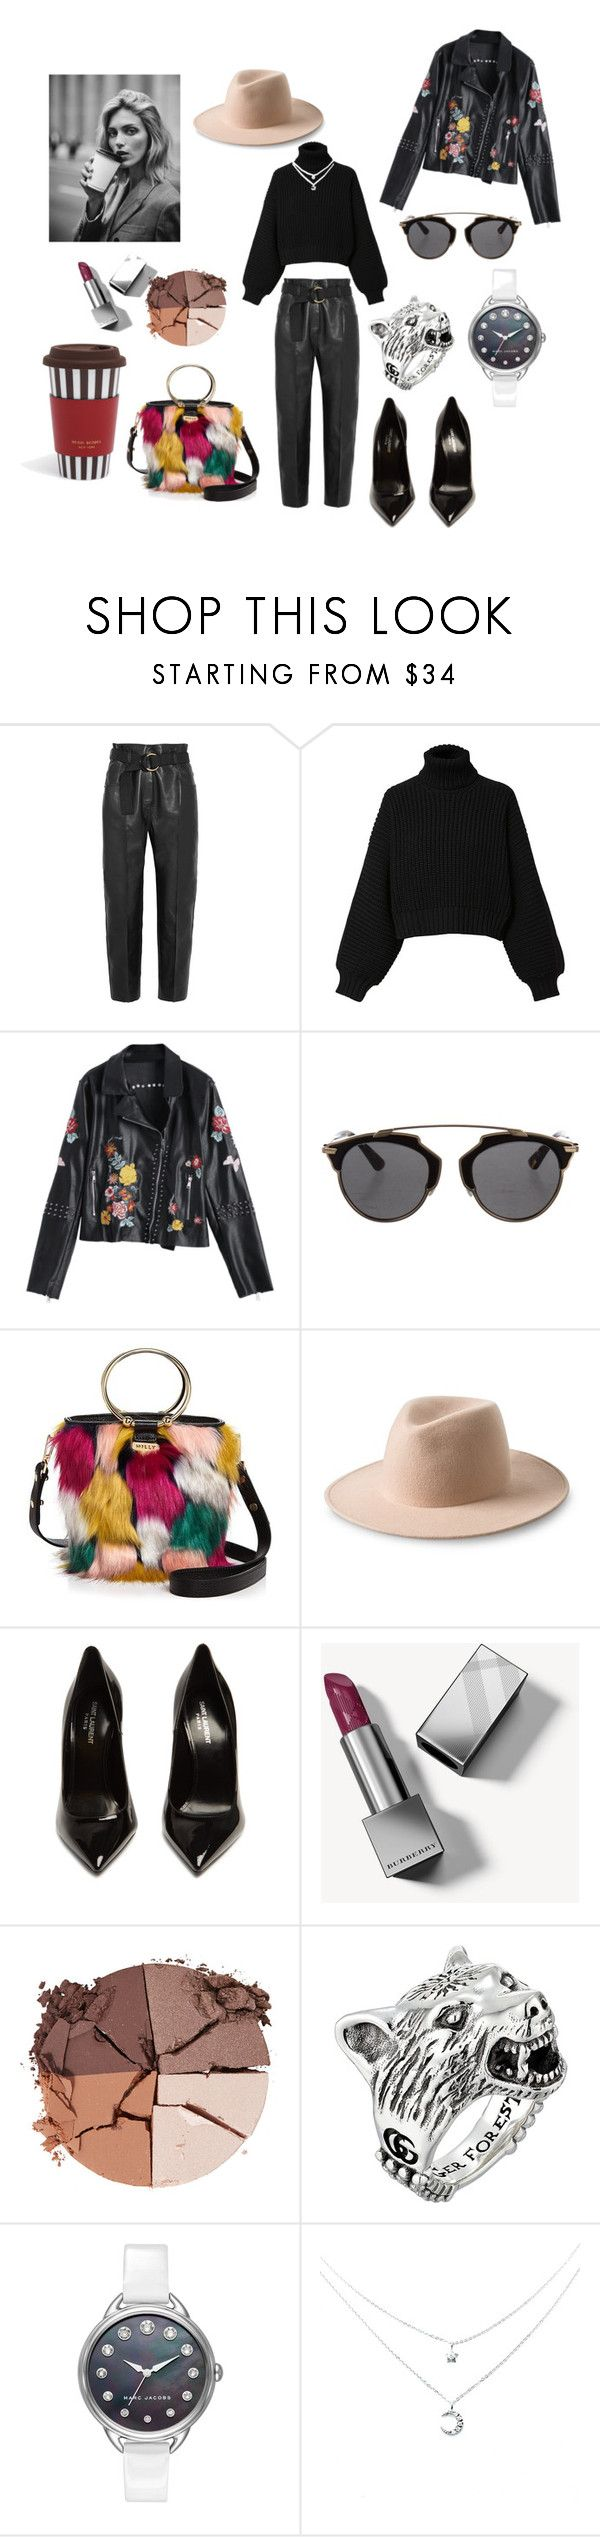 """""""Untitled #344"""" by gloriatovizi on Polyvore featuring Petar Petrov, Diesel, Anja, Christian Dior, Milly, Yves Saint Laurent, Burberry, lilah b., Gucci and Marc Jacobs"""